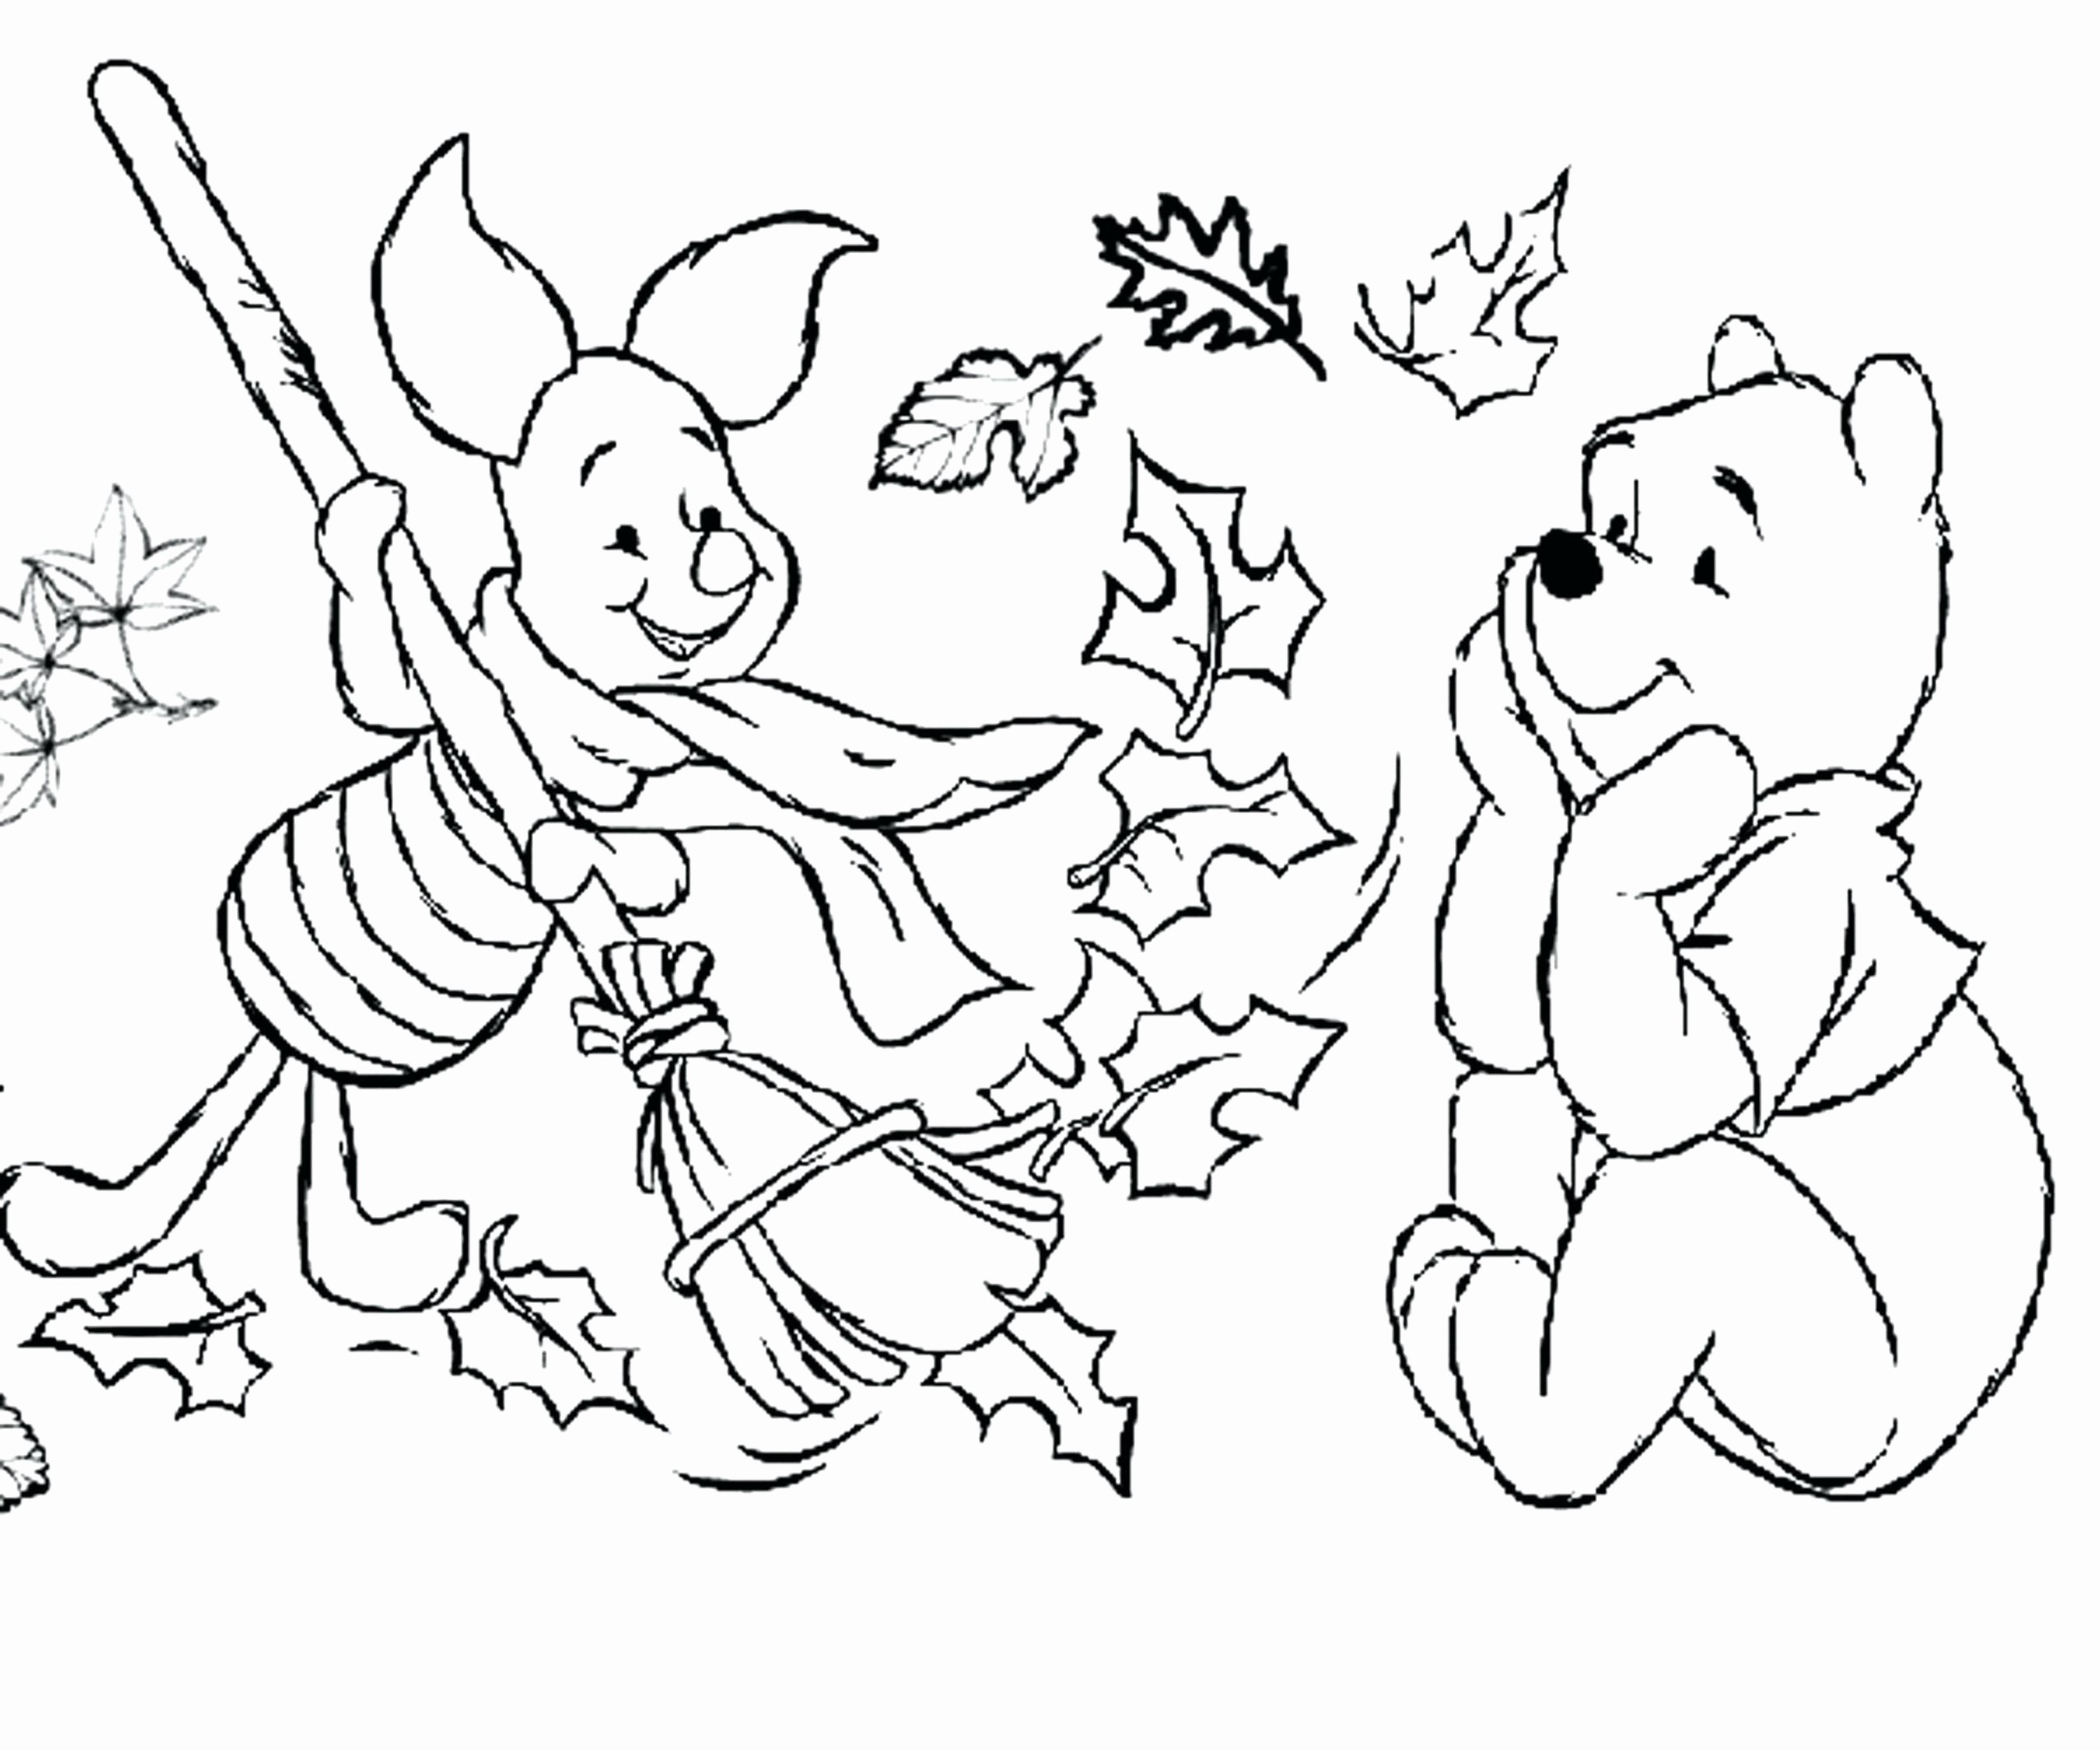 kid online coloring pages Download-Kid Coloring Pages Beautiful Kids Coloring Pages for Boys Fall Coloring Pages 0d Page for Kids 8-g